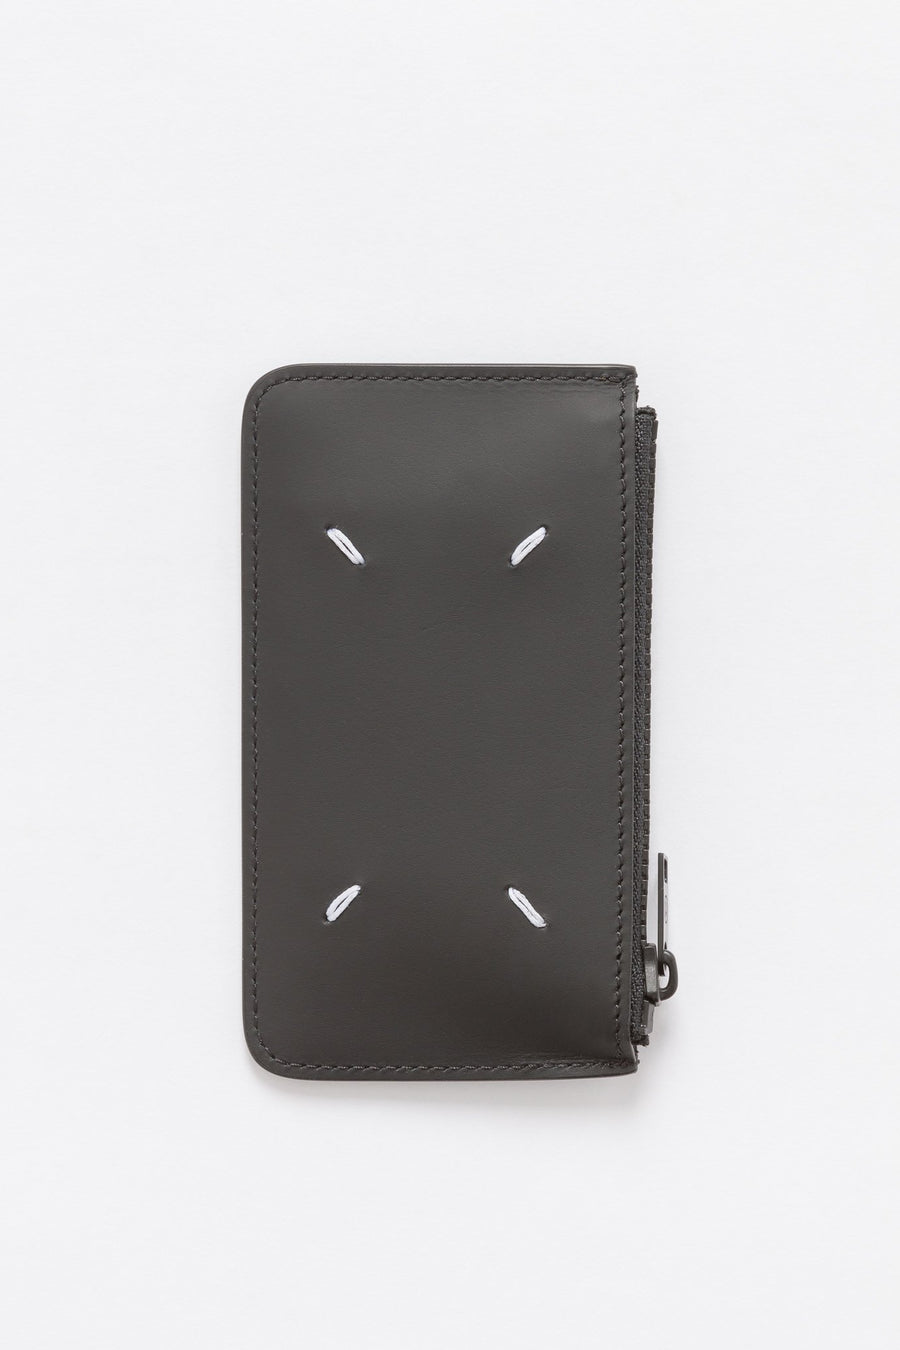 Maison Margiela Zip Wallet in Black - Notre